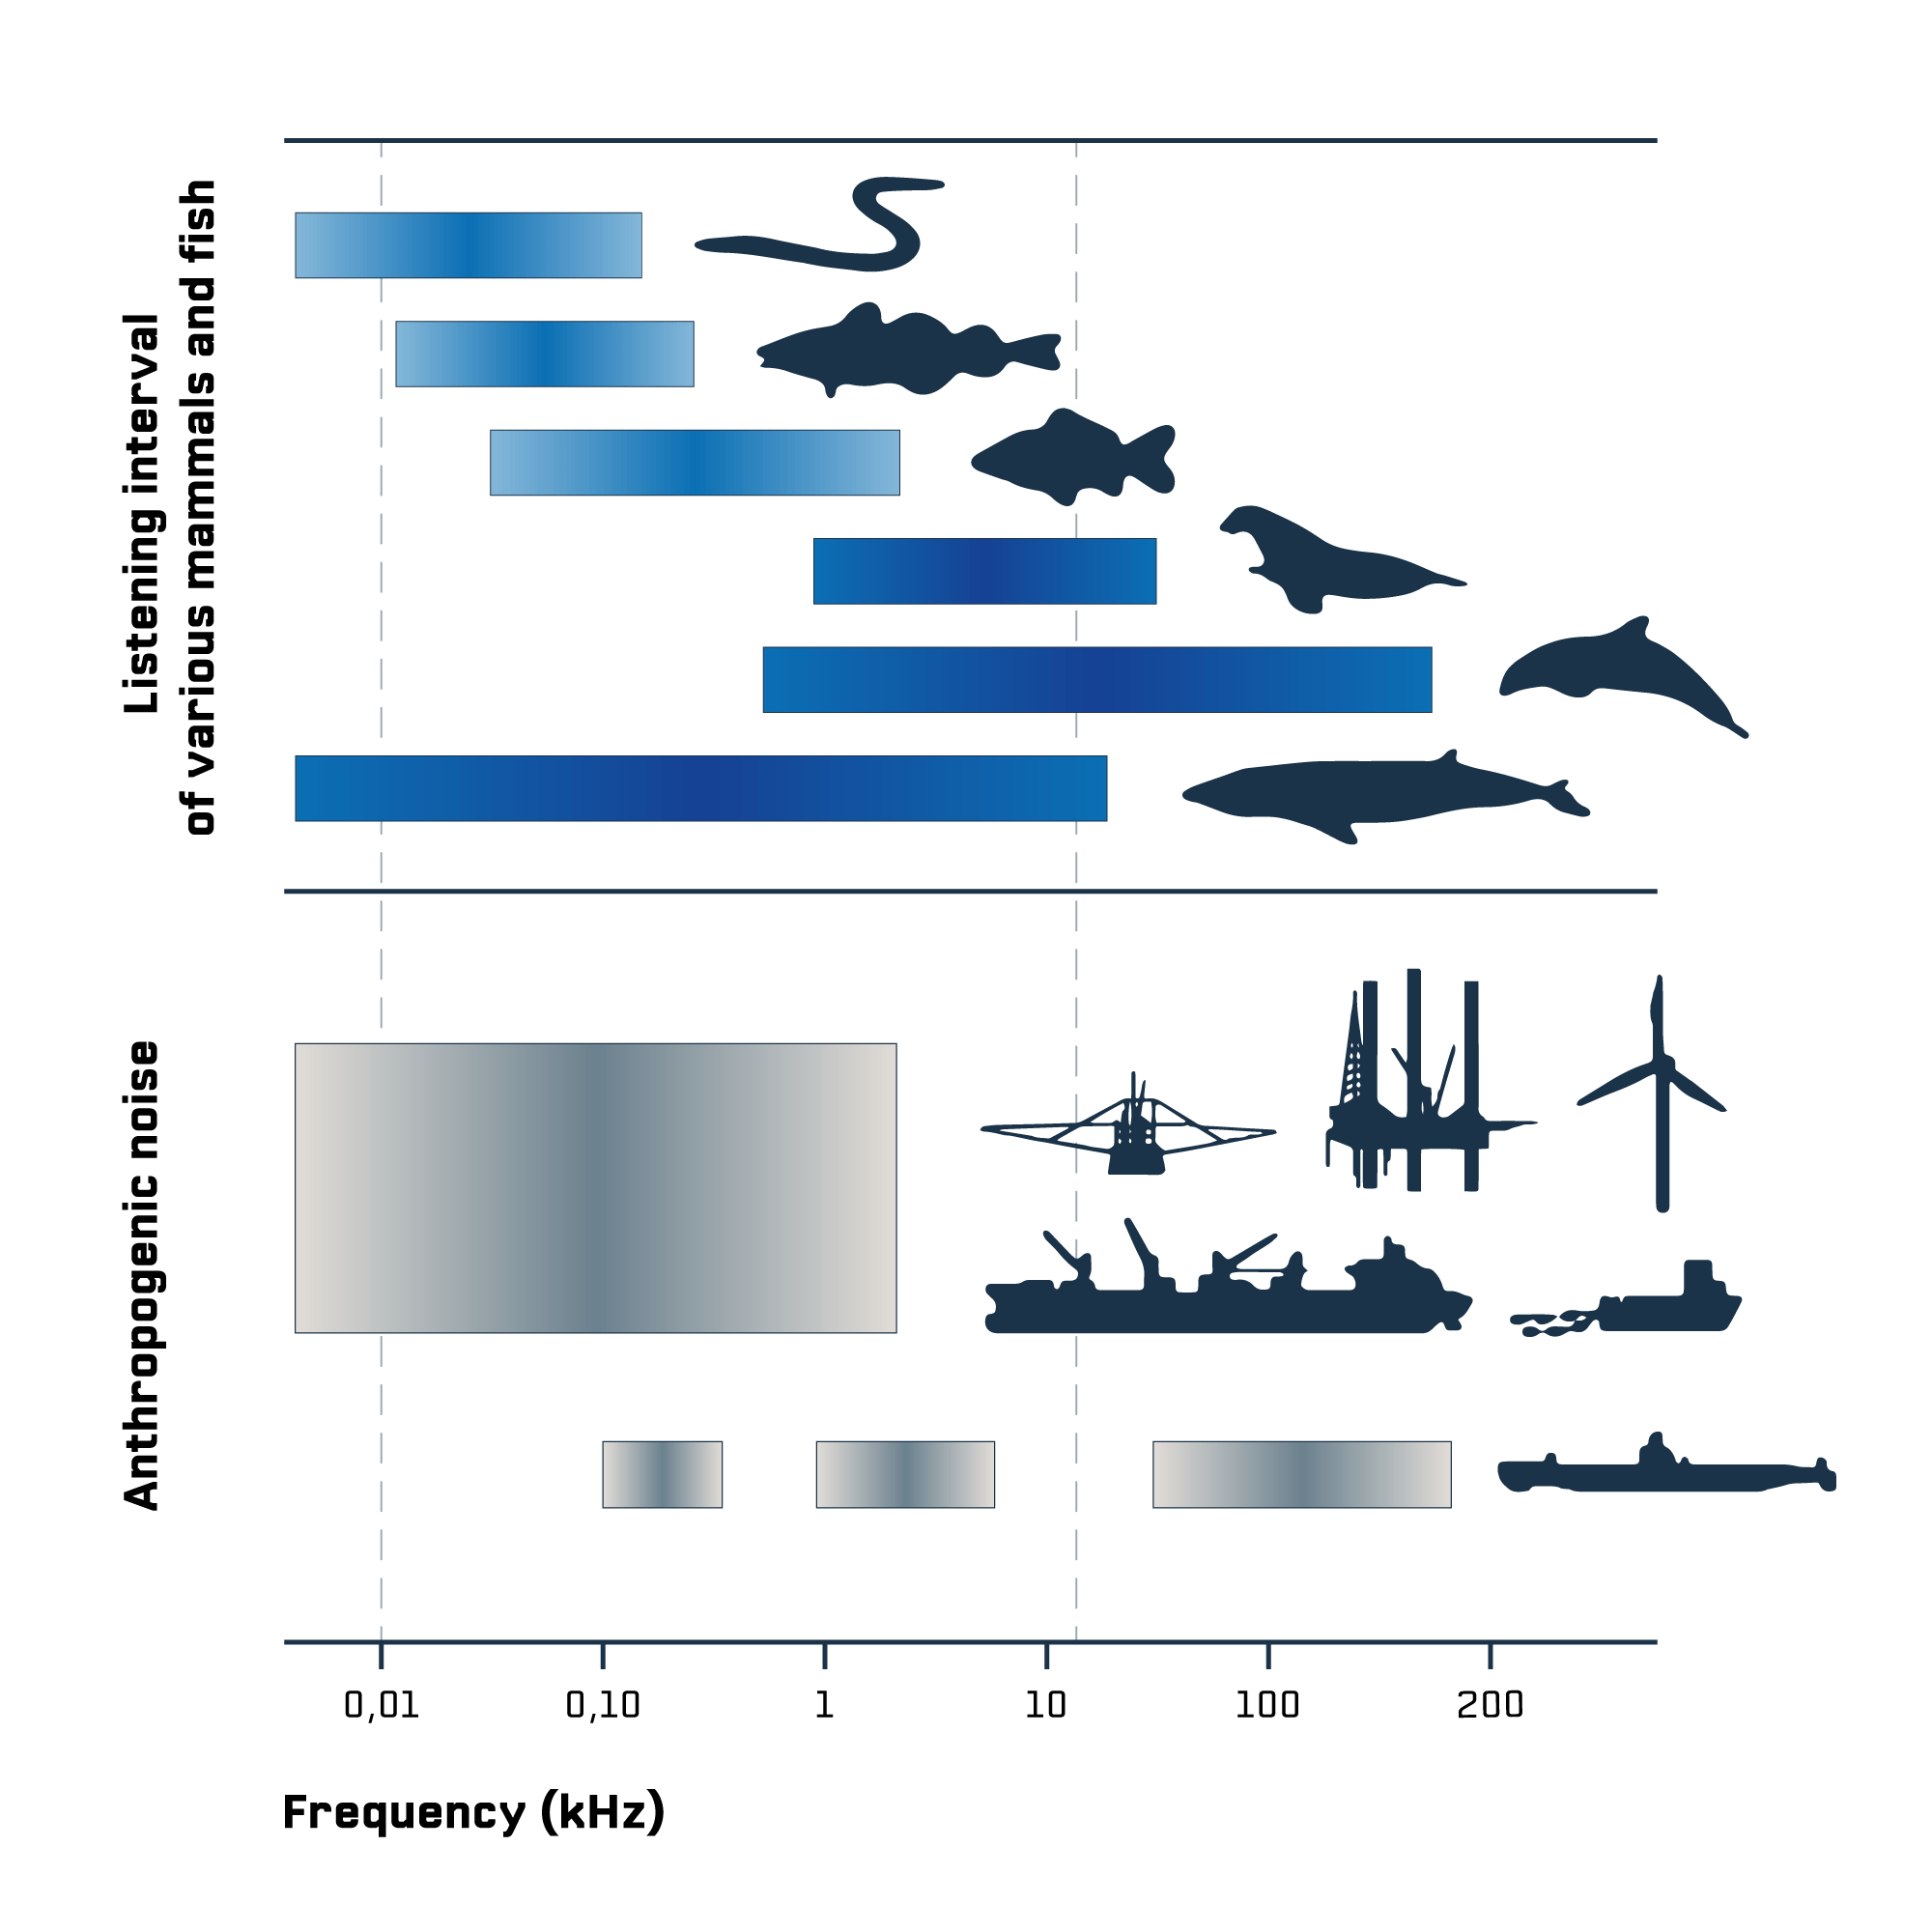 Anthropogenic sounds compared to communication of cetaceans and fishes. from Slabbekoorn and al. (2010)